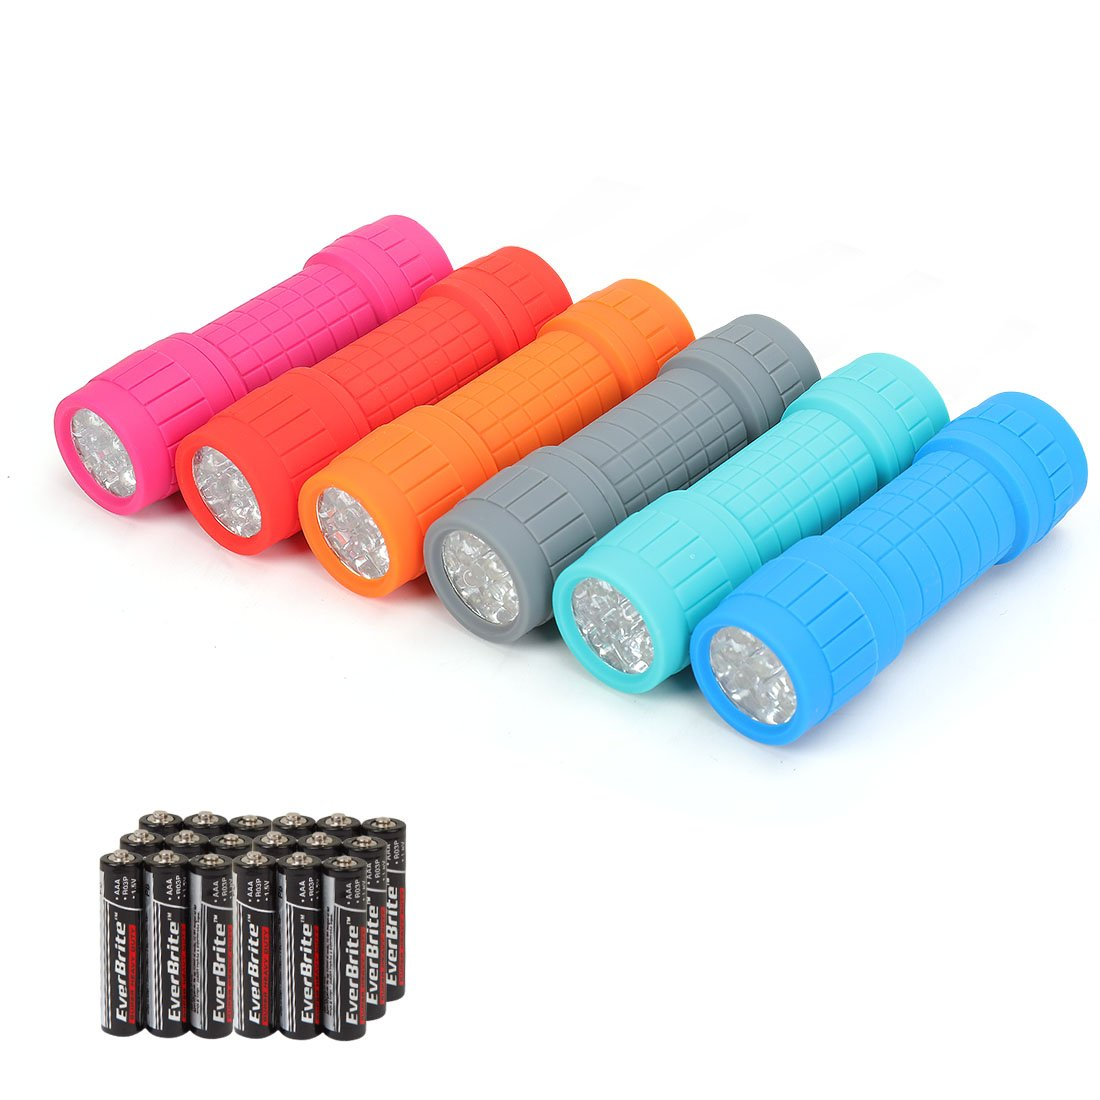 EverBrite 9-LED Flashlight 6-pack Impact Handheld Torch Assorted Colors with Lanyard 3AAA Battery Included (Hurricane Supplies, Camping, Hiking, Emergency, Hunting) by EverBrite